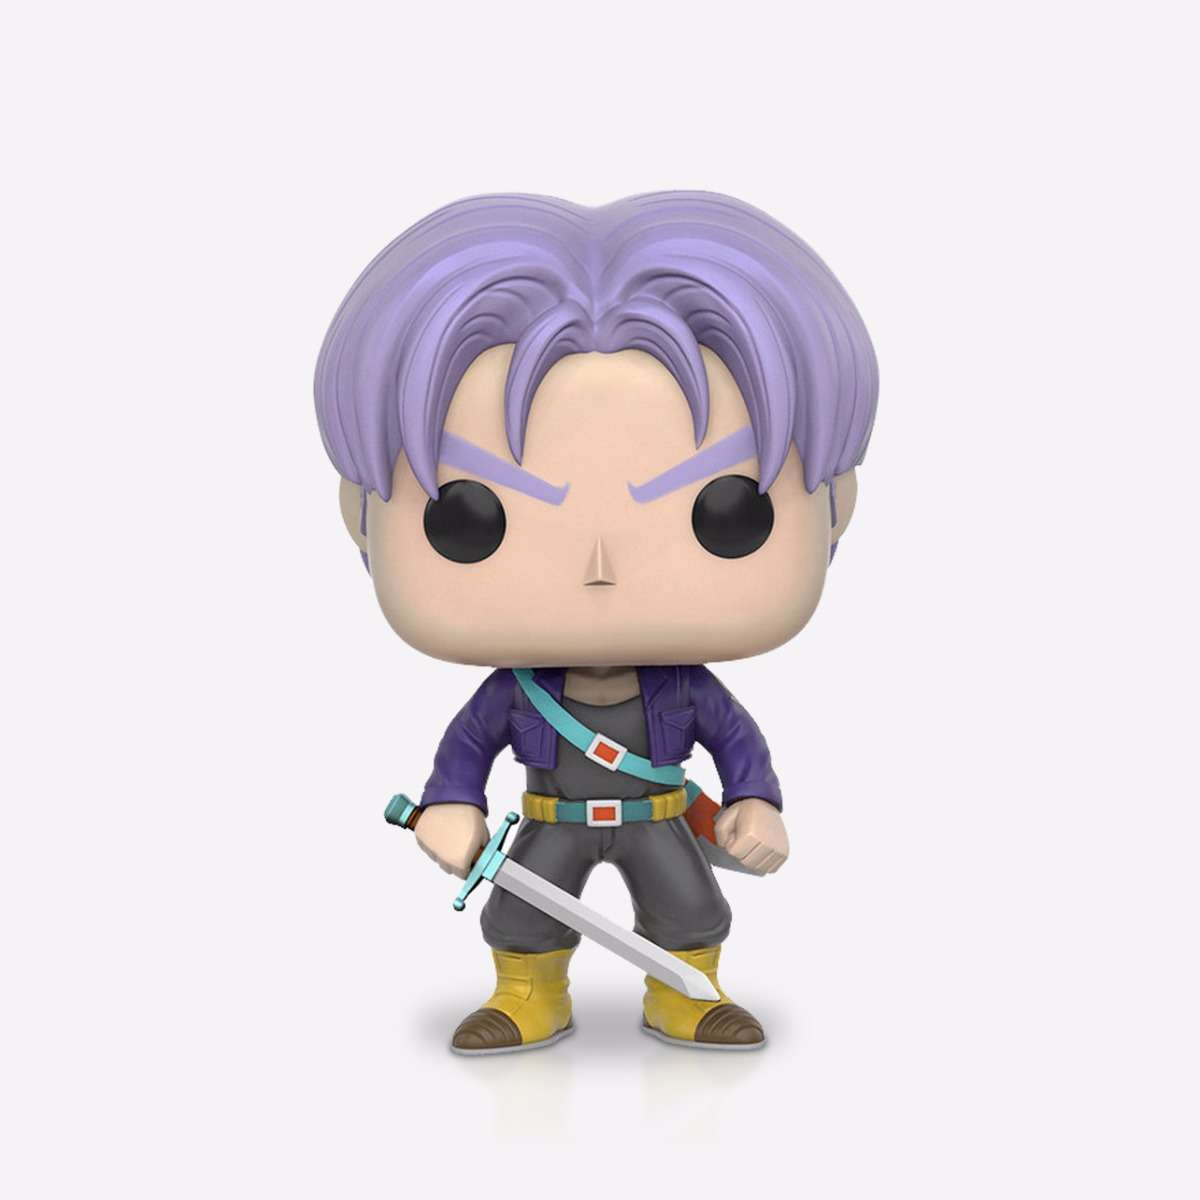 Funko Pop - Trunks Figures & Collectibles